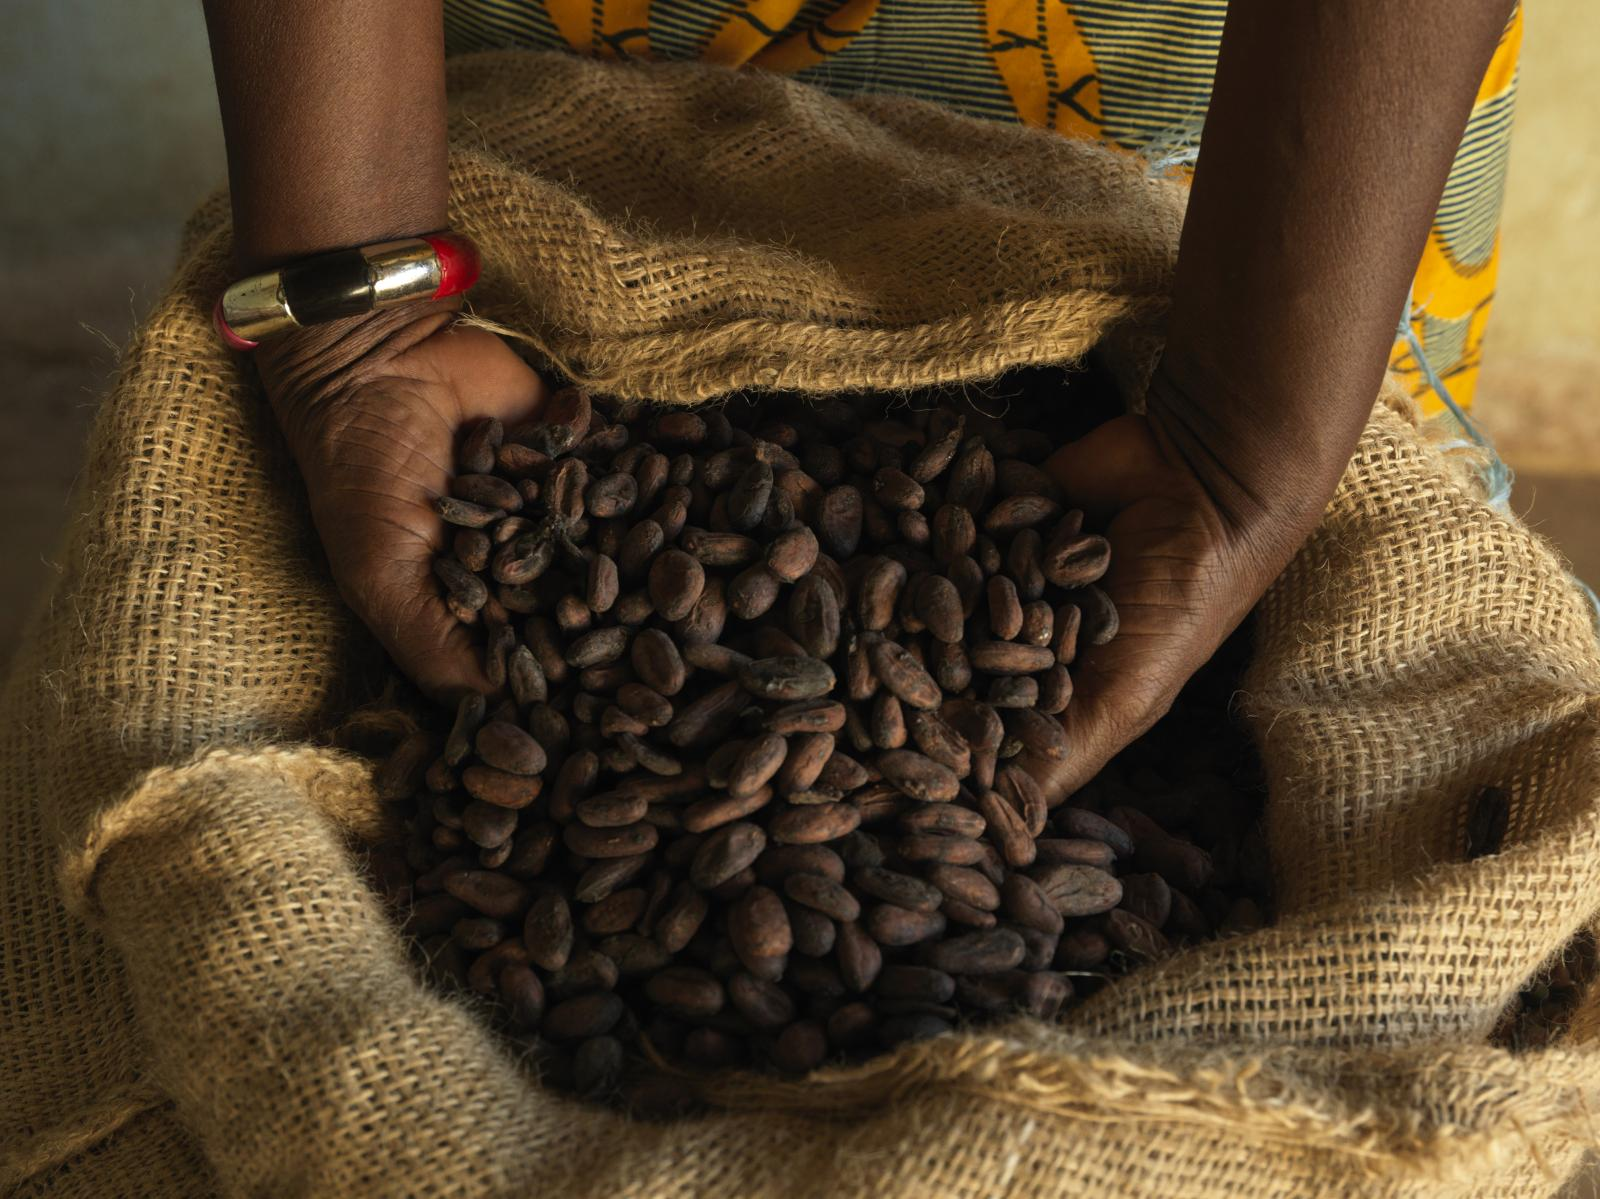 Cocoa beans in hands. Photo credit: The Fairtrade Foundation